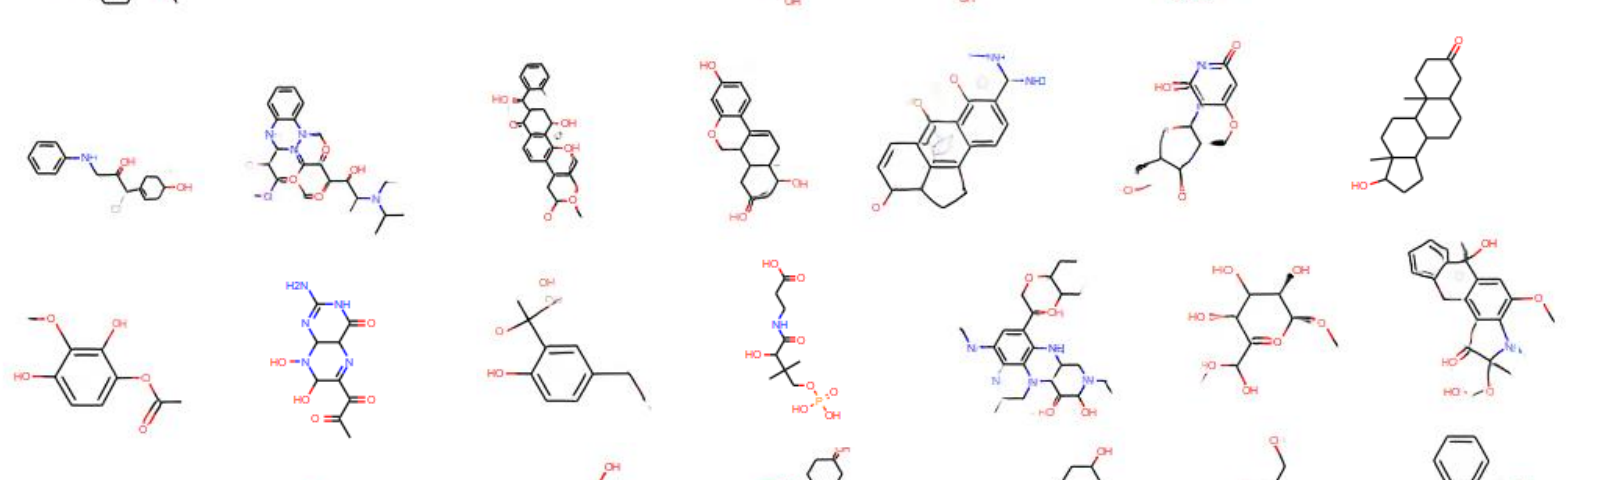 Molecule synthesis using AI - Towards Data Science